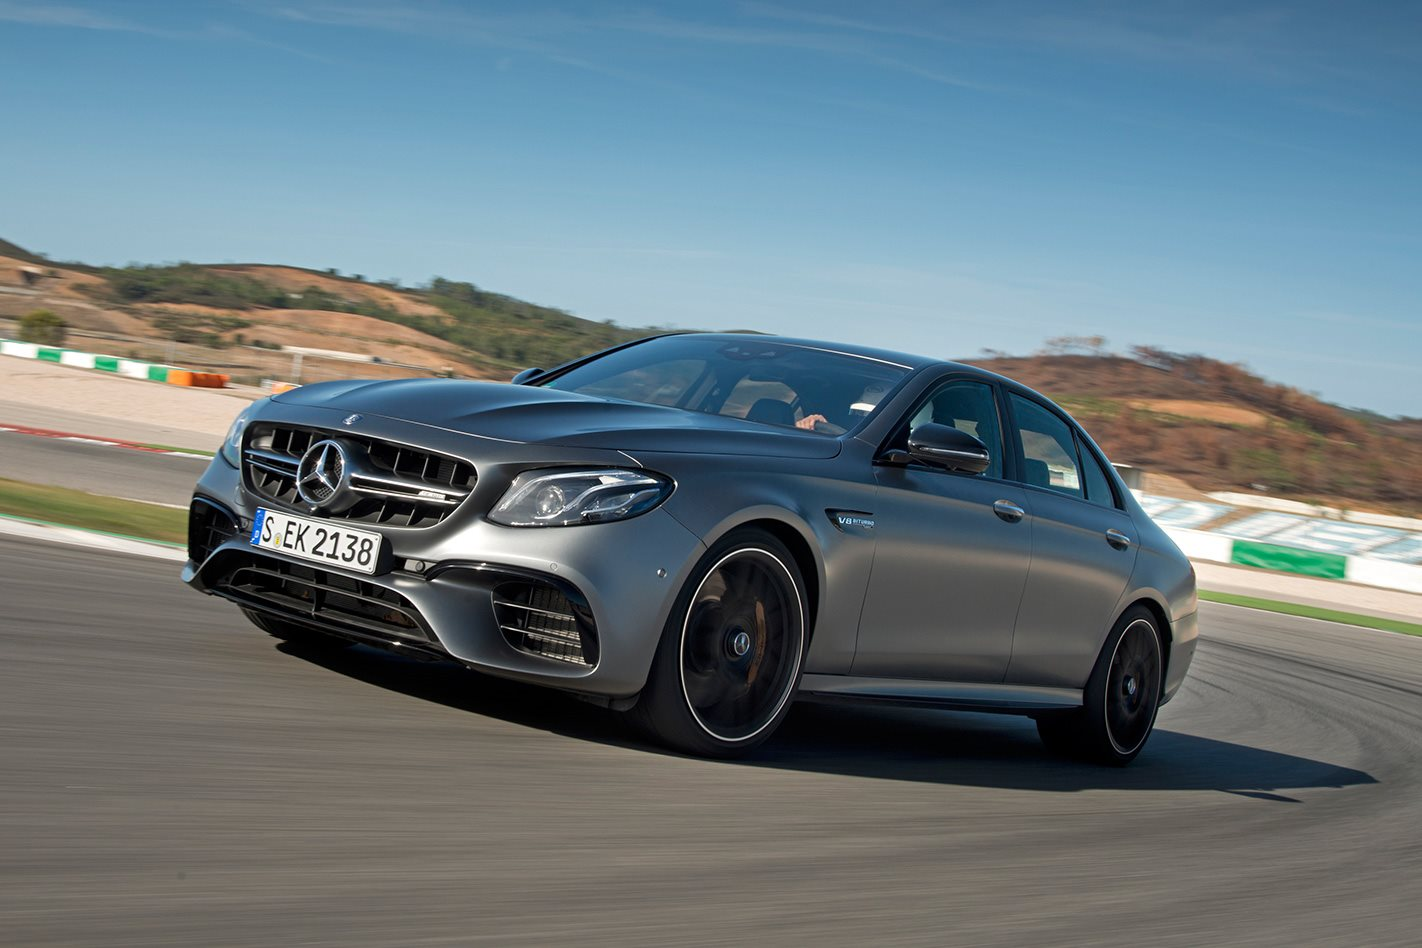 Mercedes-AMG E 63 Estate priced from £81,130 | Autocar